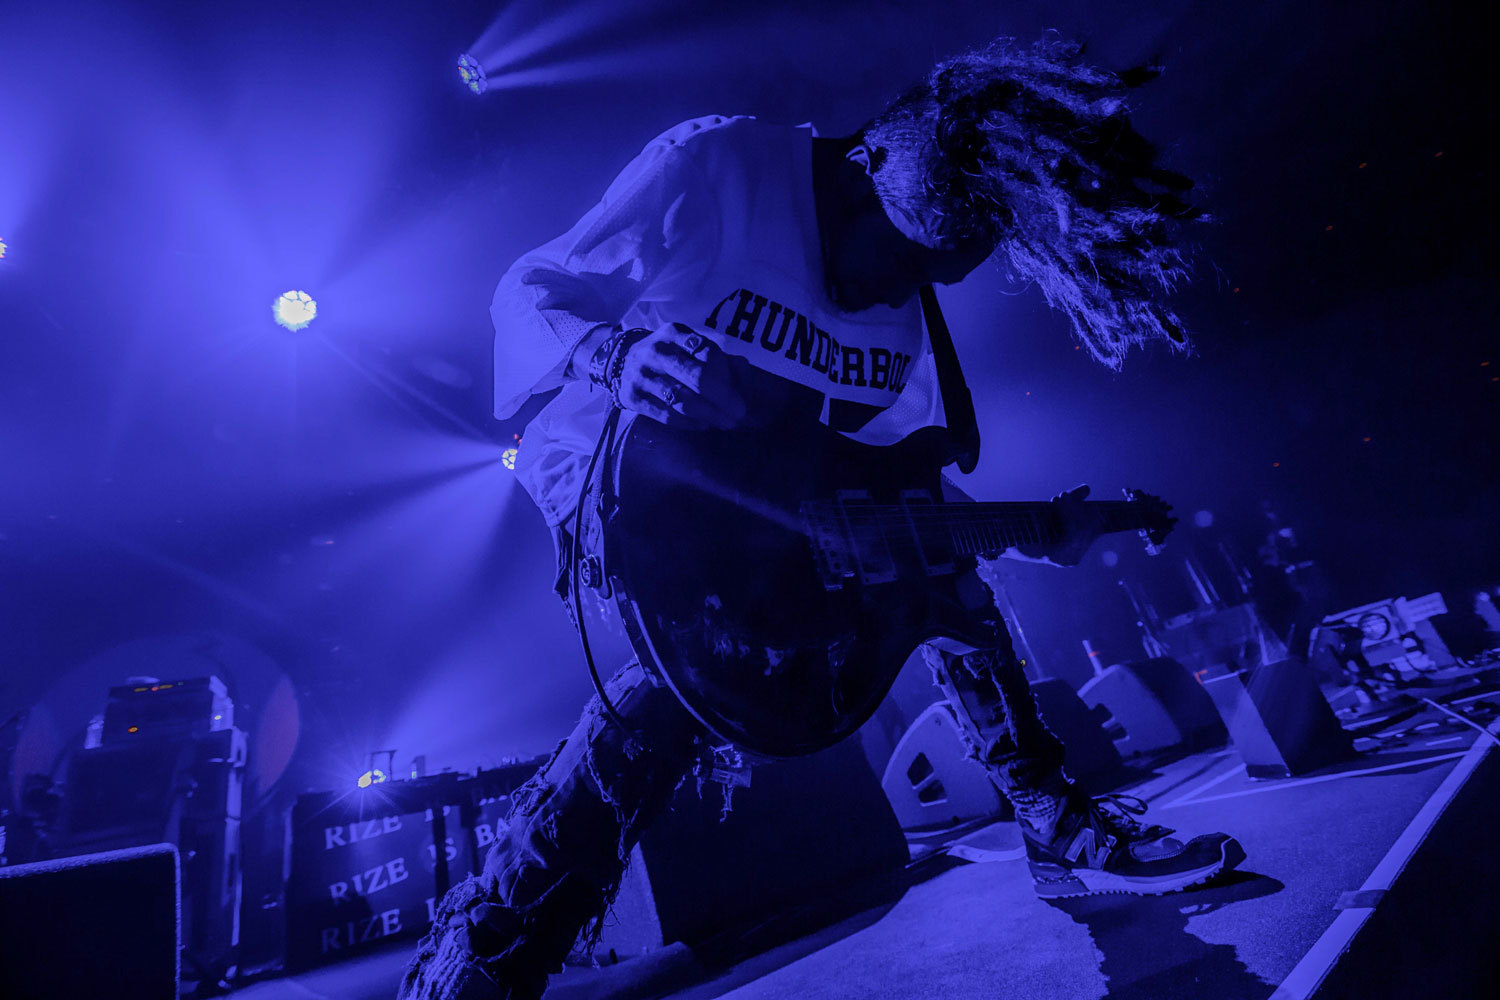 RIZE Photo by RIZE IS BACK OFFICIAL